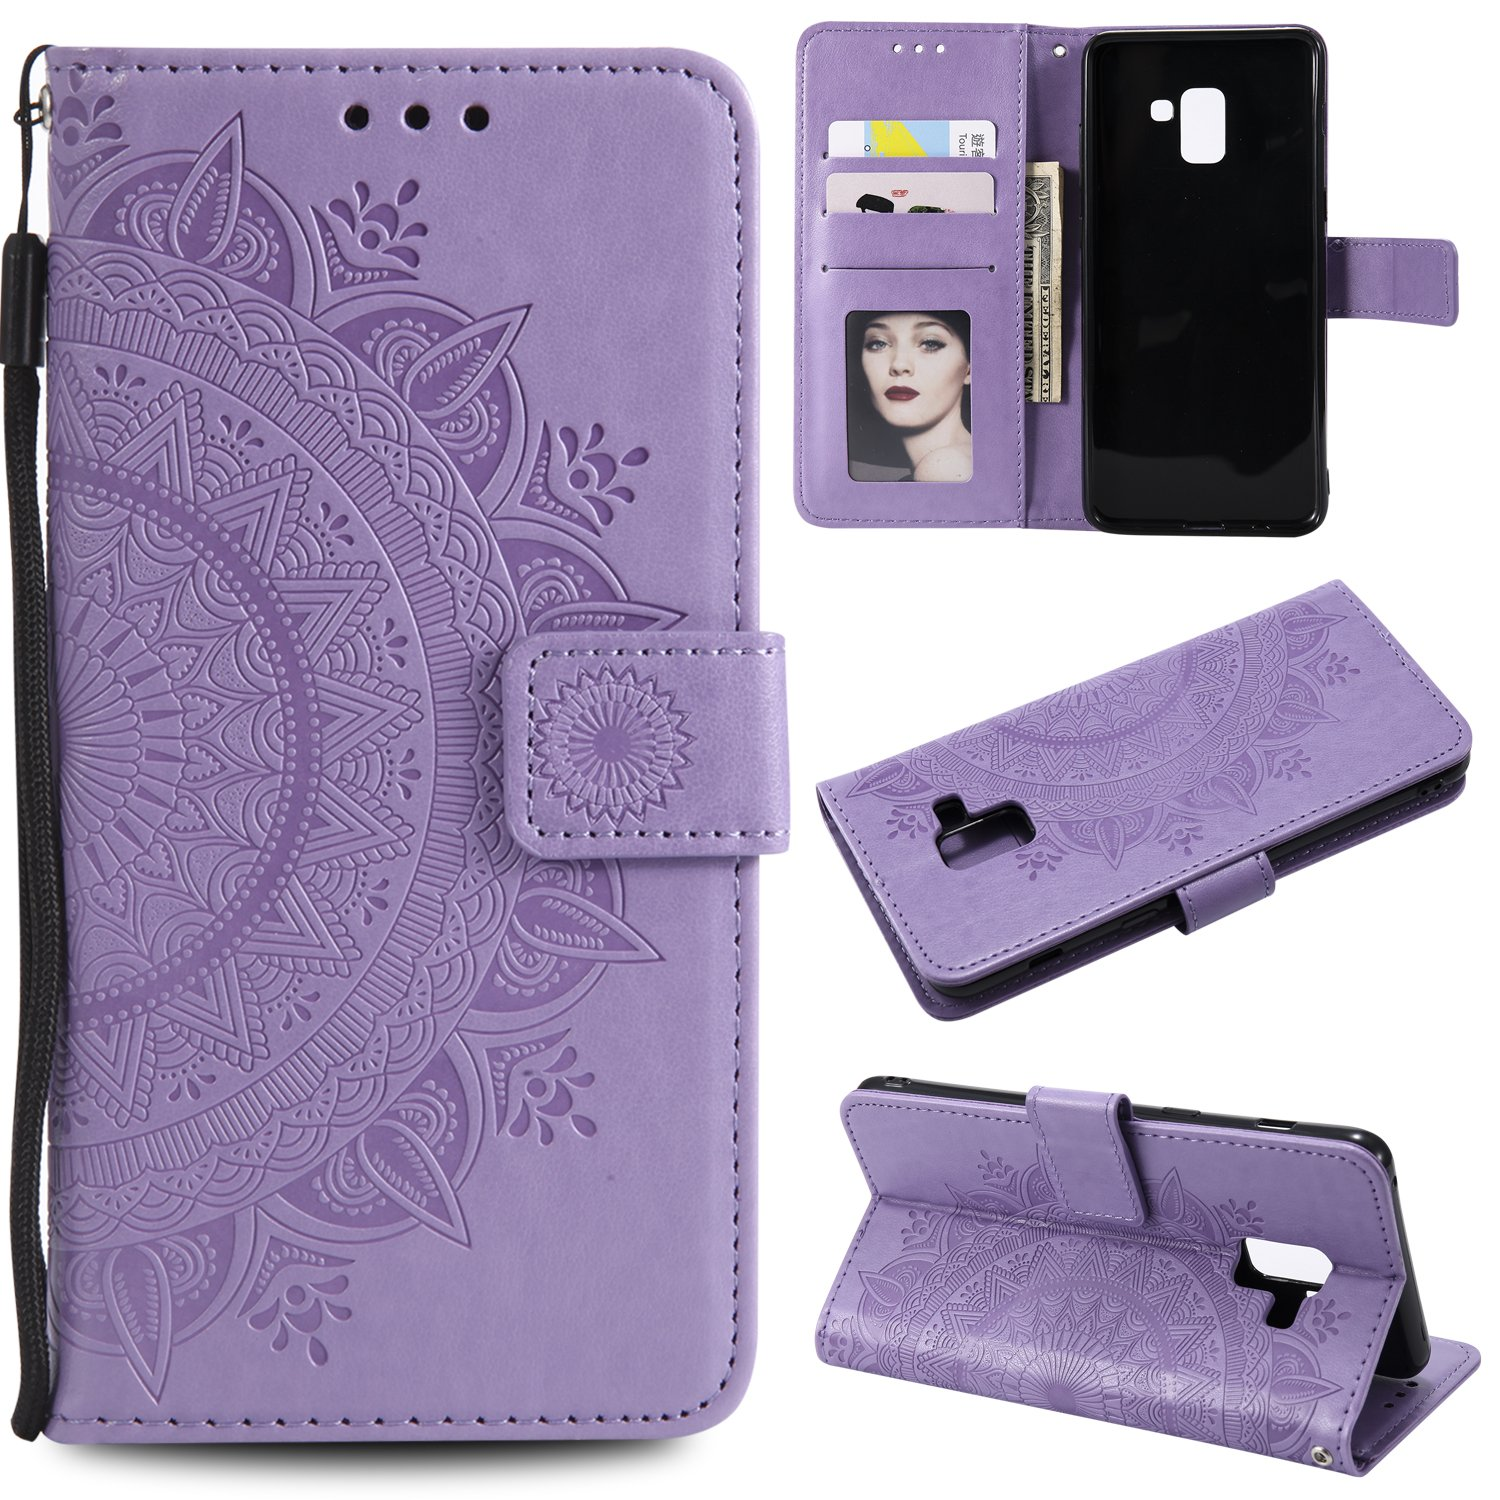 Galaxy A8 Plus 2018 Floral Wallet Case,Galaxy A8 Plus 2018 Strap Flip Case,Leecase Embossed Totem Flower Design Pu Leather Bookstyle Stand Flip Case for Samsung Galaxy A8 Plus 2018-Purple